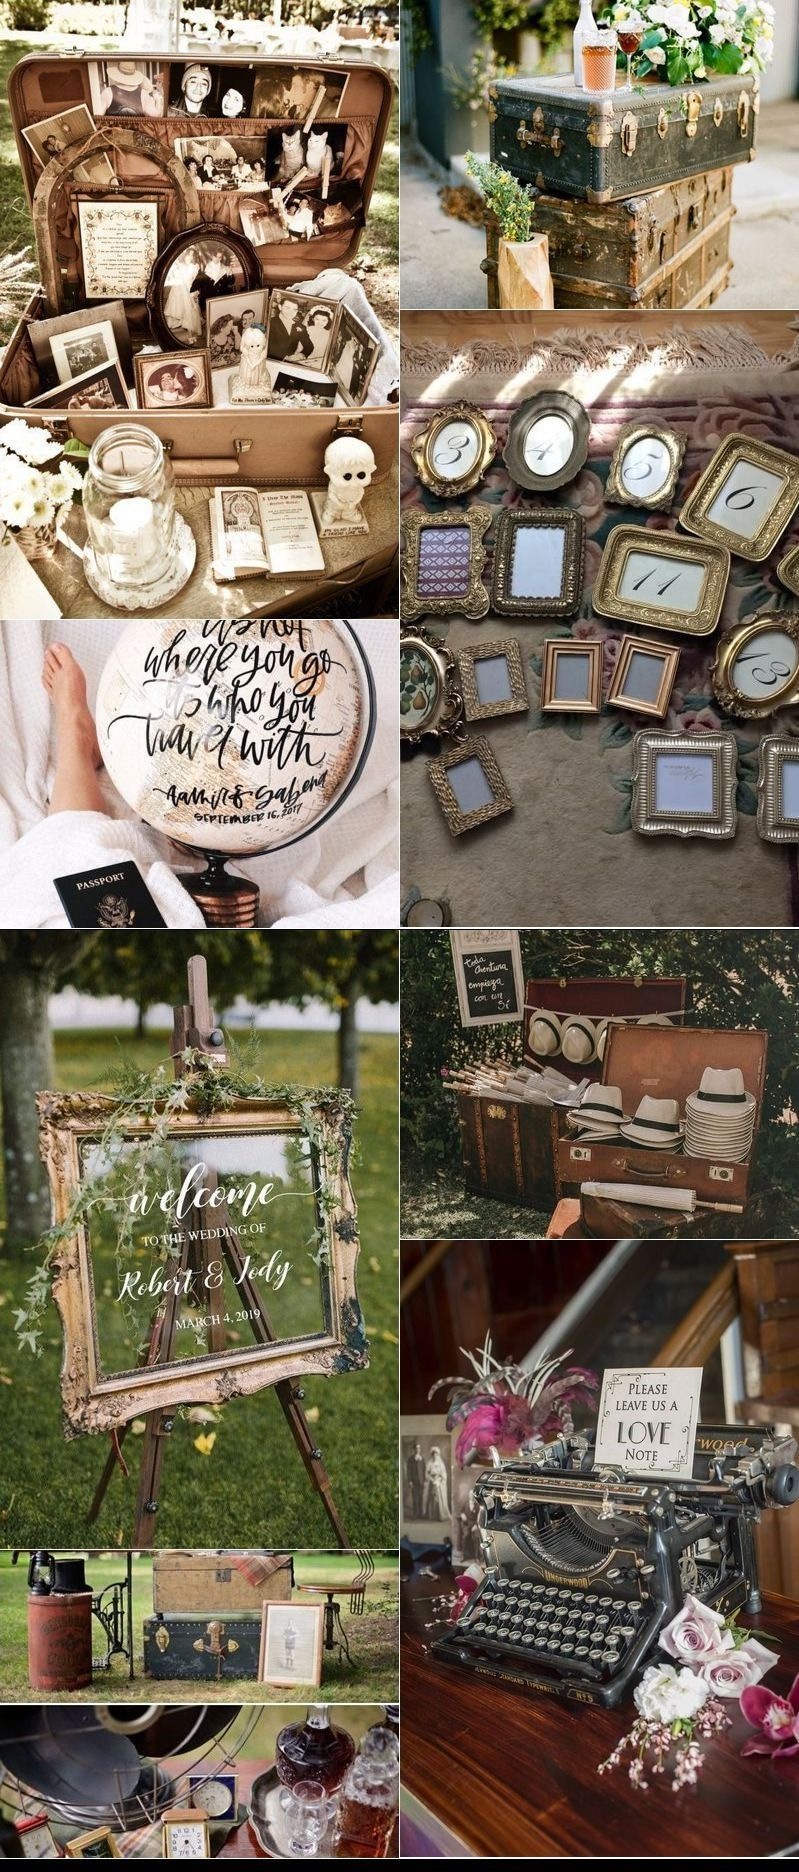 Top 20 Vintage Suitcase Wedding Decor Ideas #vintagesuitcasewedding Top 20 Vintage Suitcase Wedding Decor Ideas #vintagesuitcasewedding